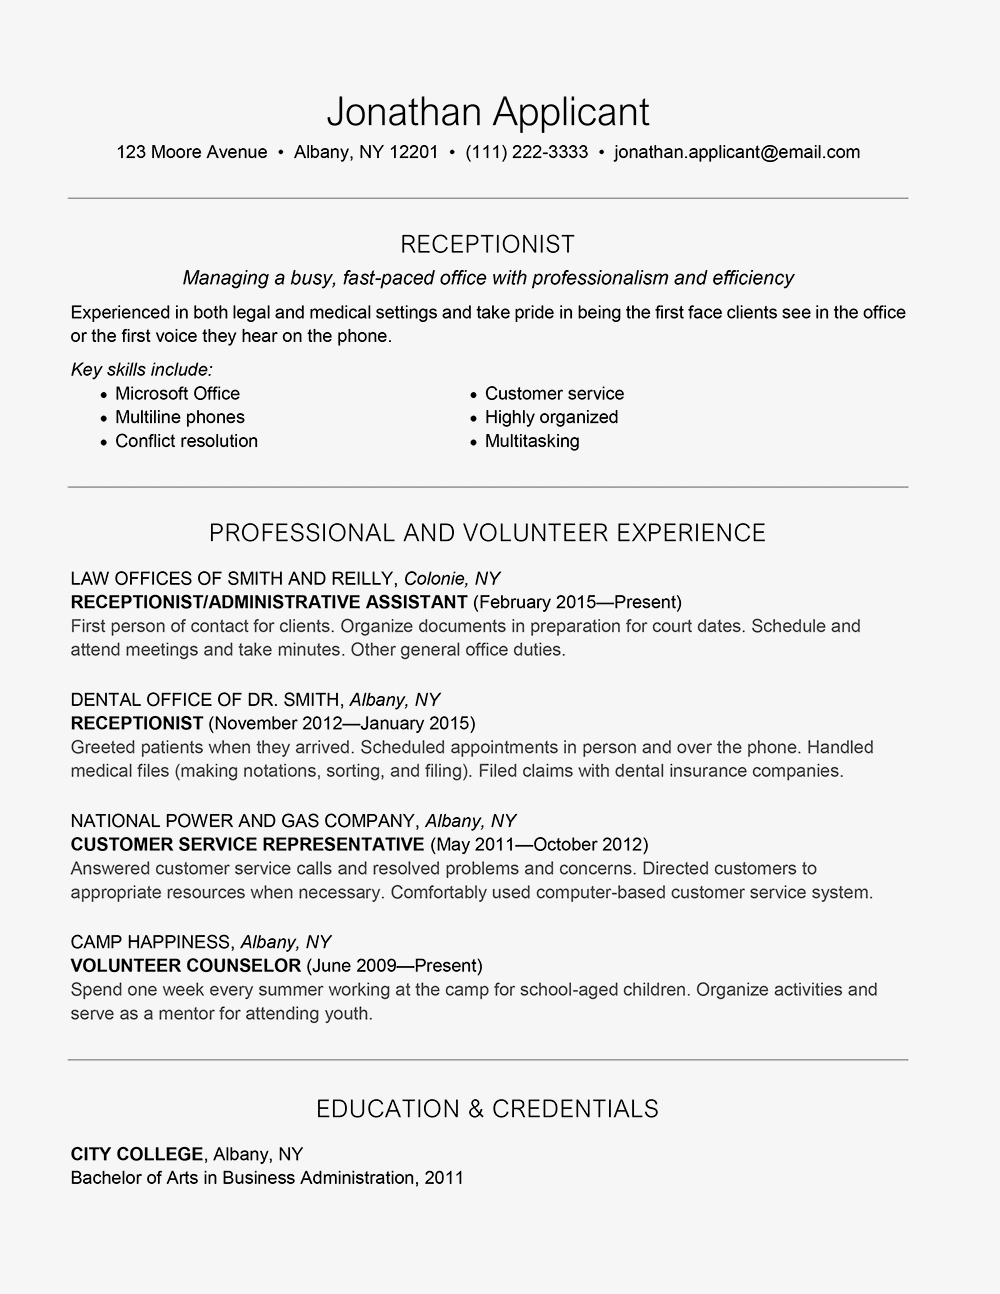 Office Clerk Job Description for Resume - Receptionist Skills Job Description and Resume Example